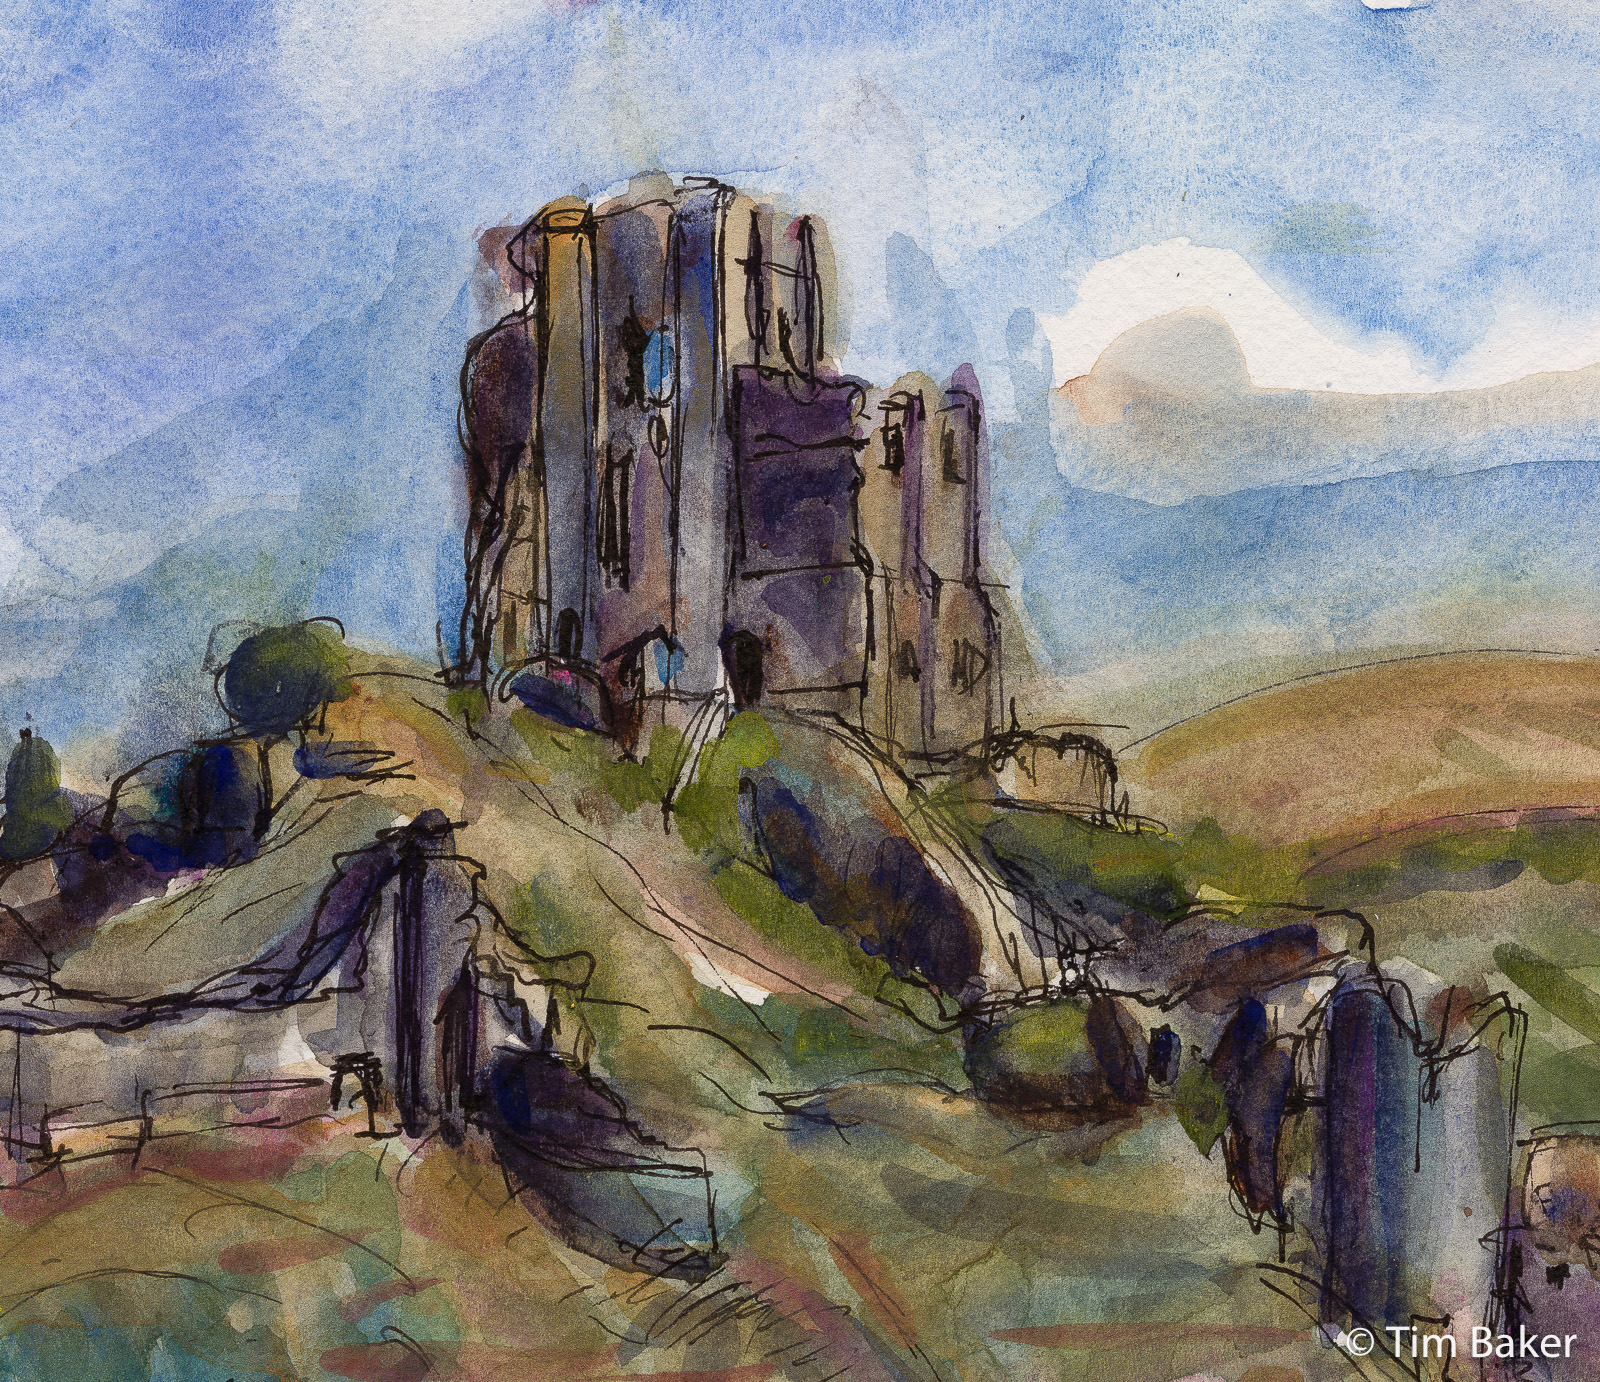 2021-Jurassic-Coast-Weymouth-to-Swanage-Rooks-And-Peregrines-Corfe-Castle-Watercolour-1-Pano-2.jpg